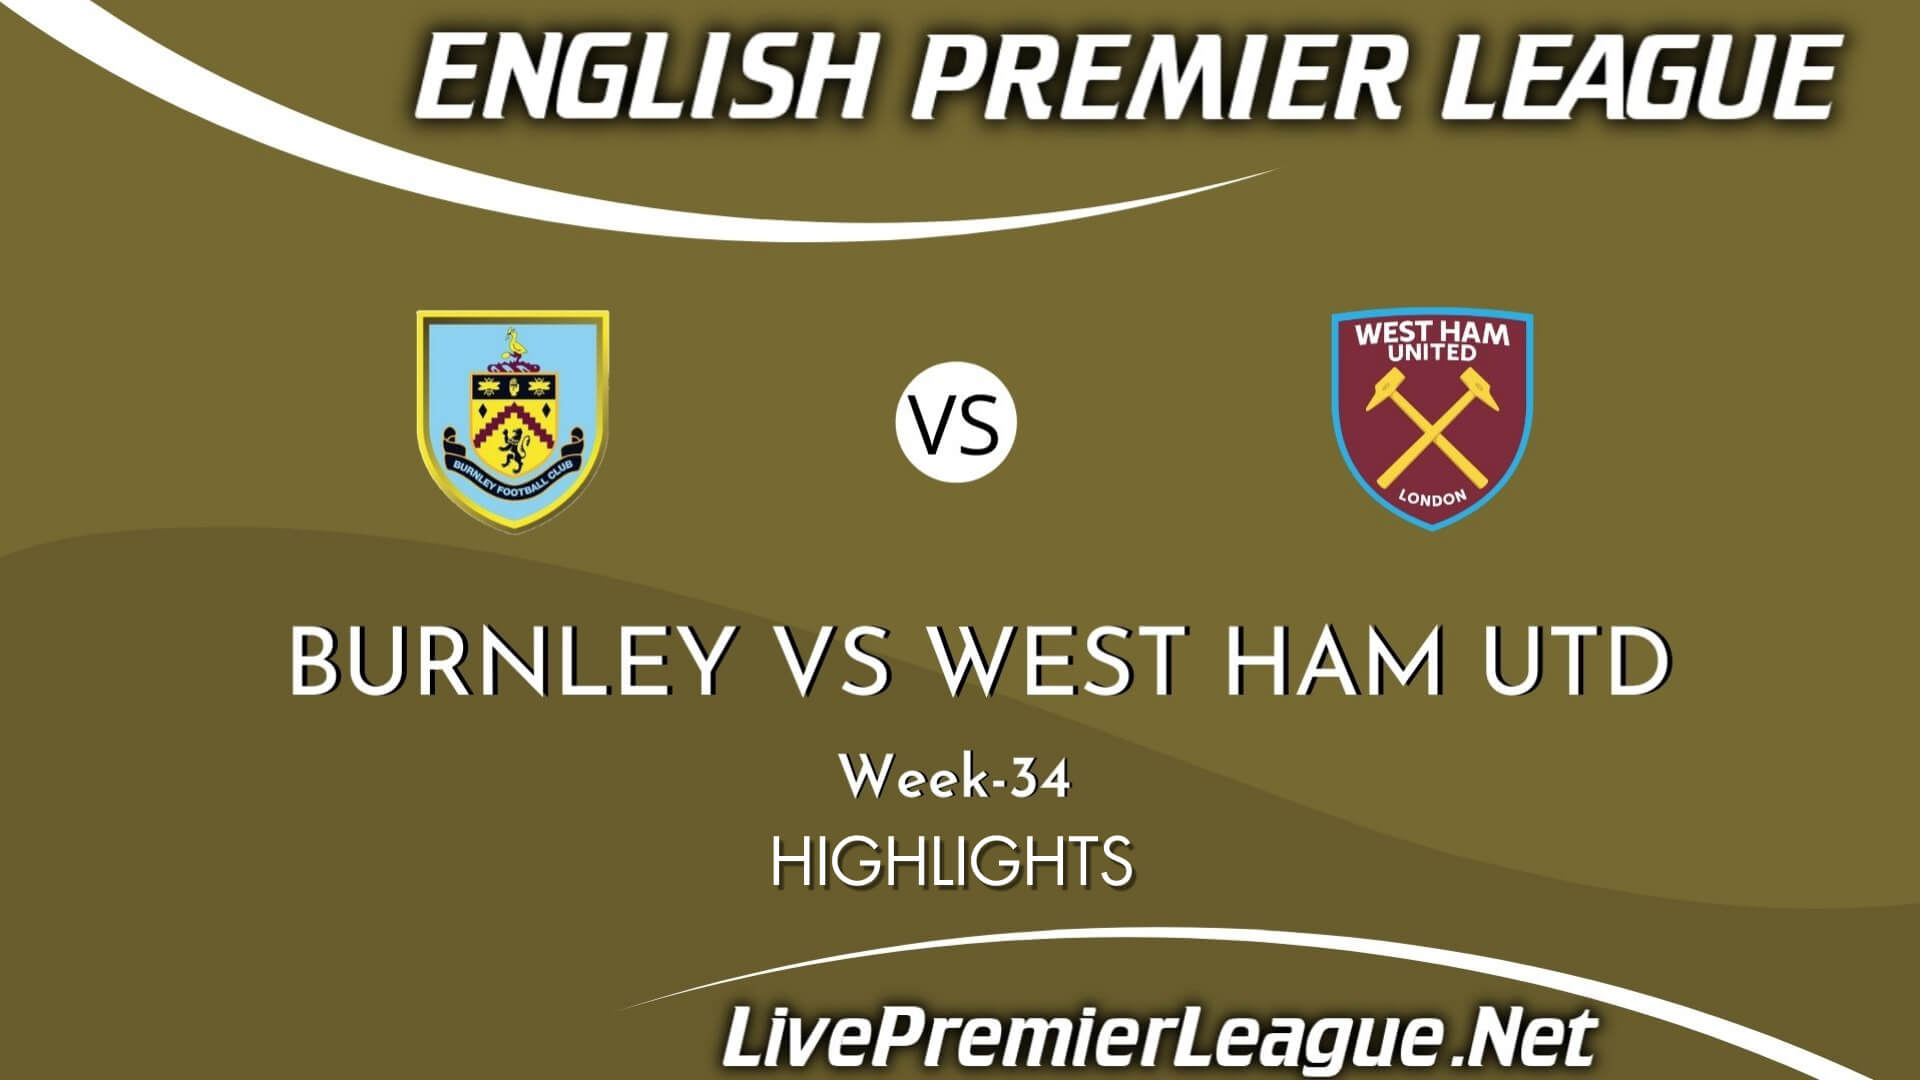 Burnley Vs West Ham Highlights 2021 Week 34